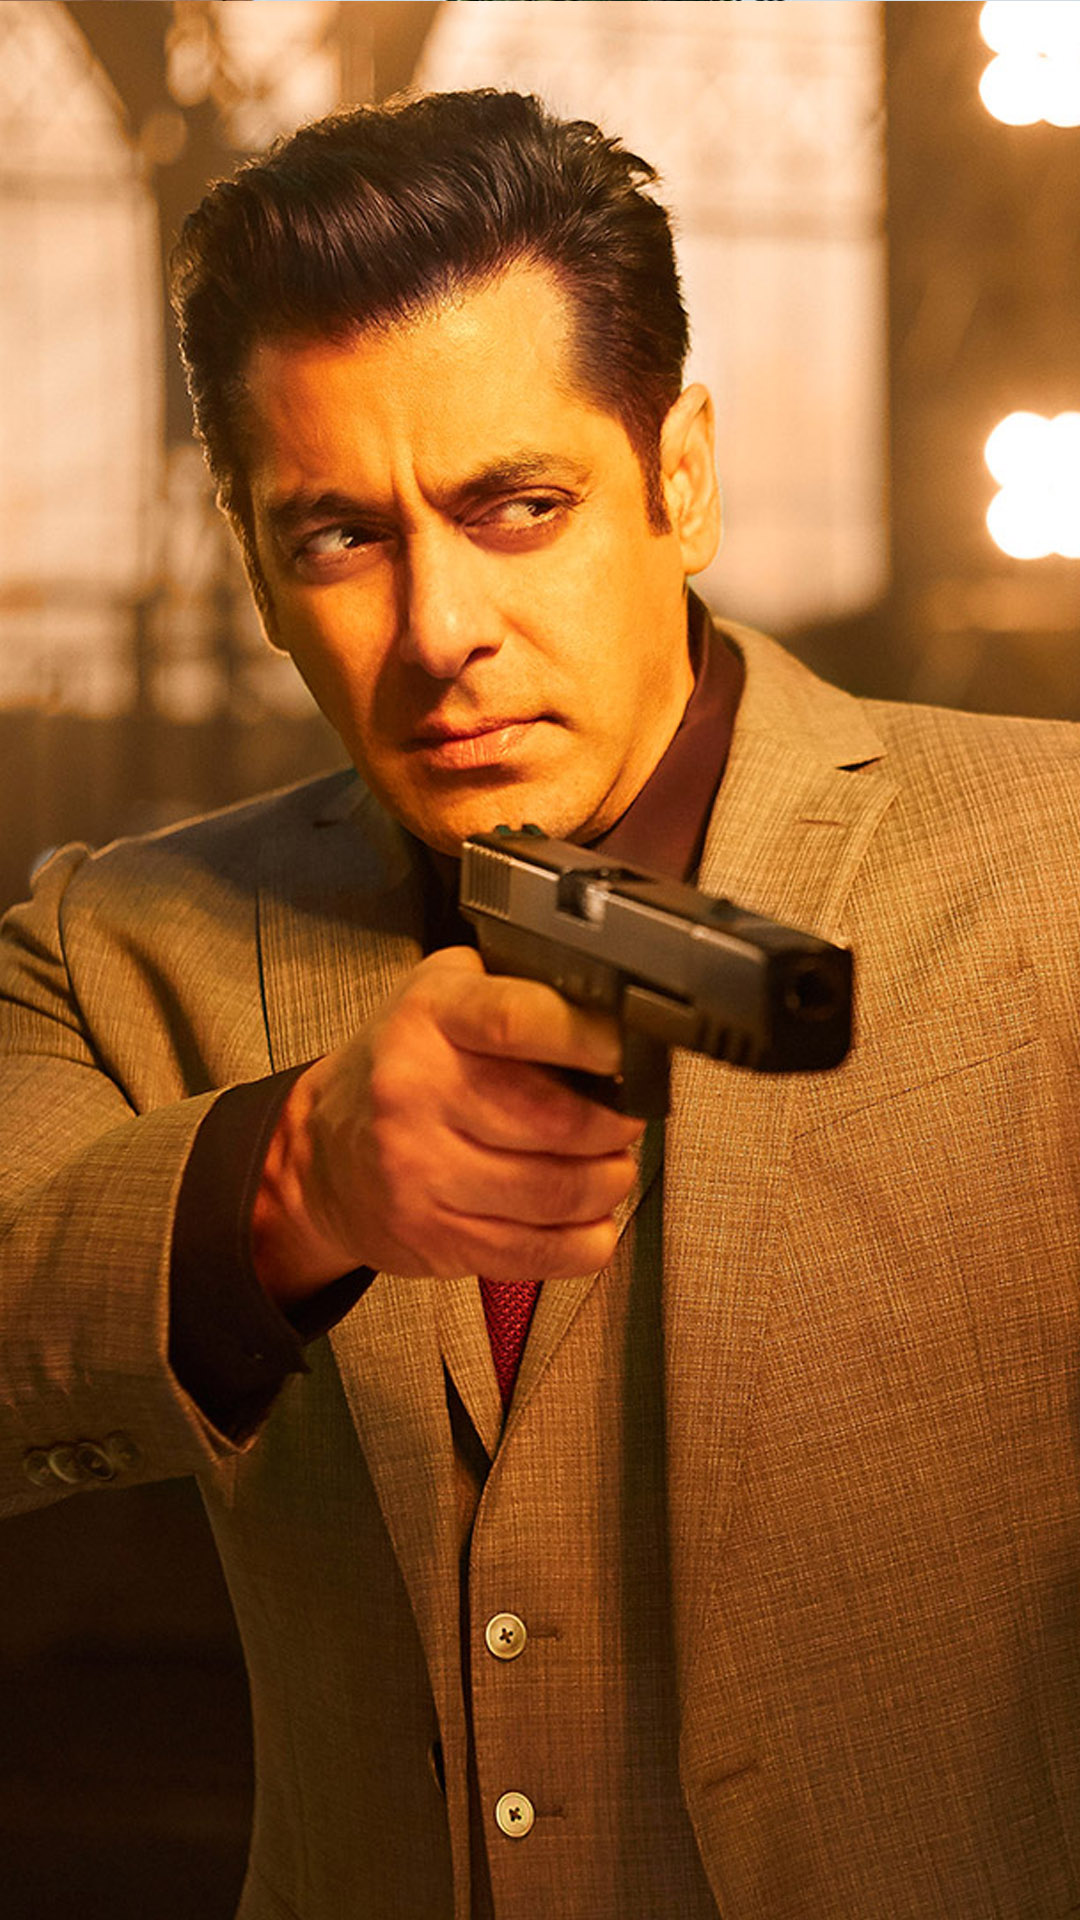 Download Salman Khan Race 3 Free Pure 4k Ultra Hd Mobile Wallpaper